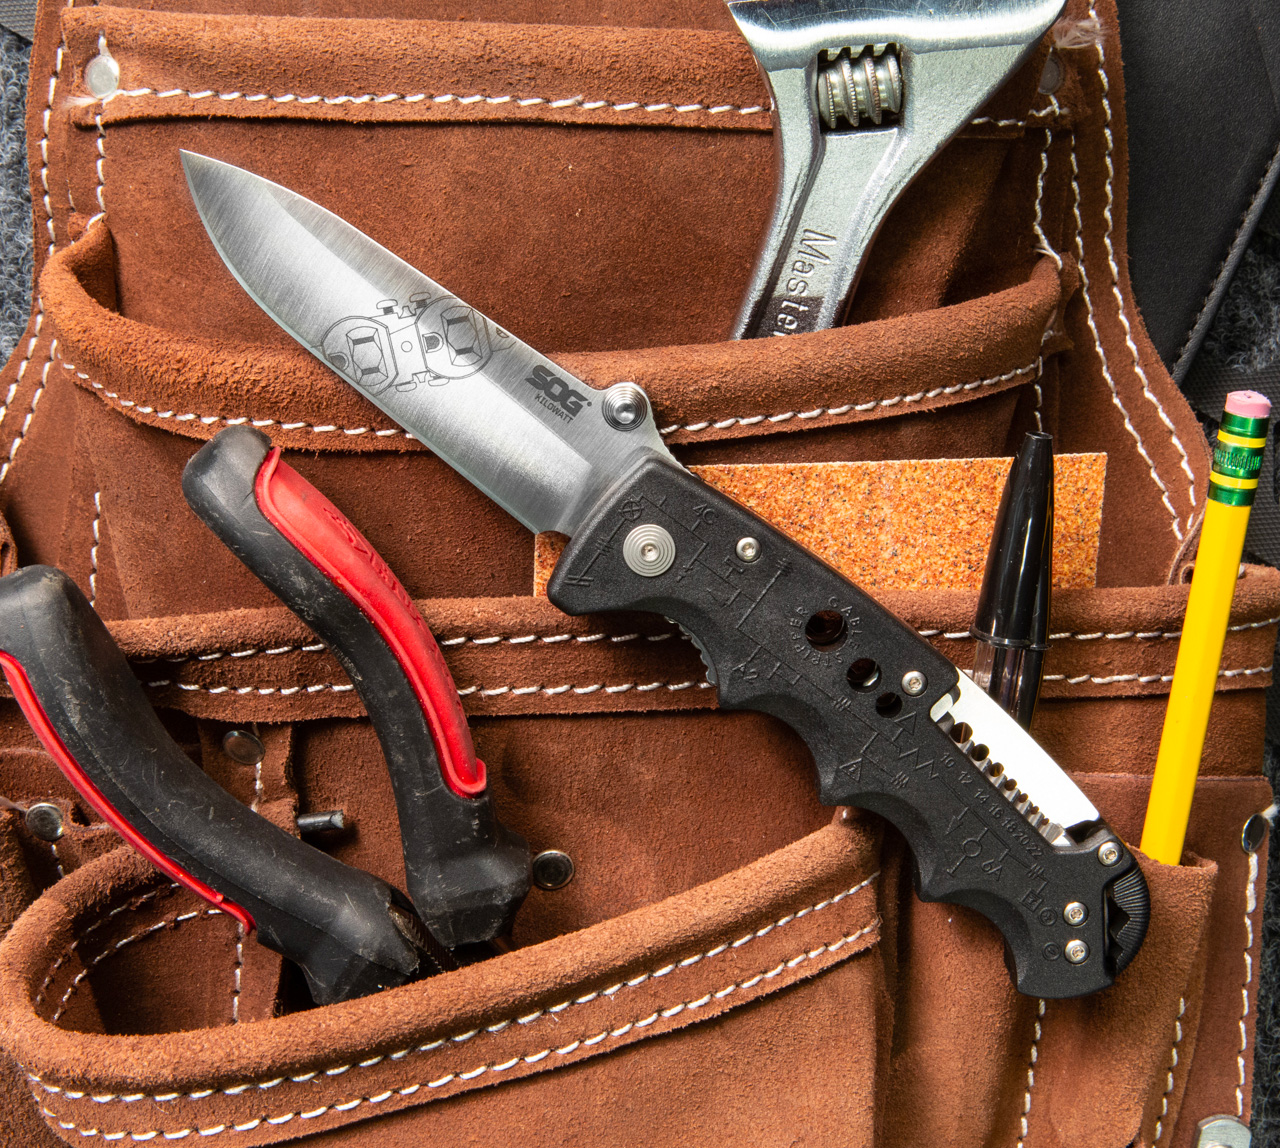 The Kilowatt Knife from SOG is an Electrician's Tool Too at werd.com